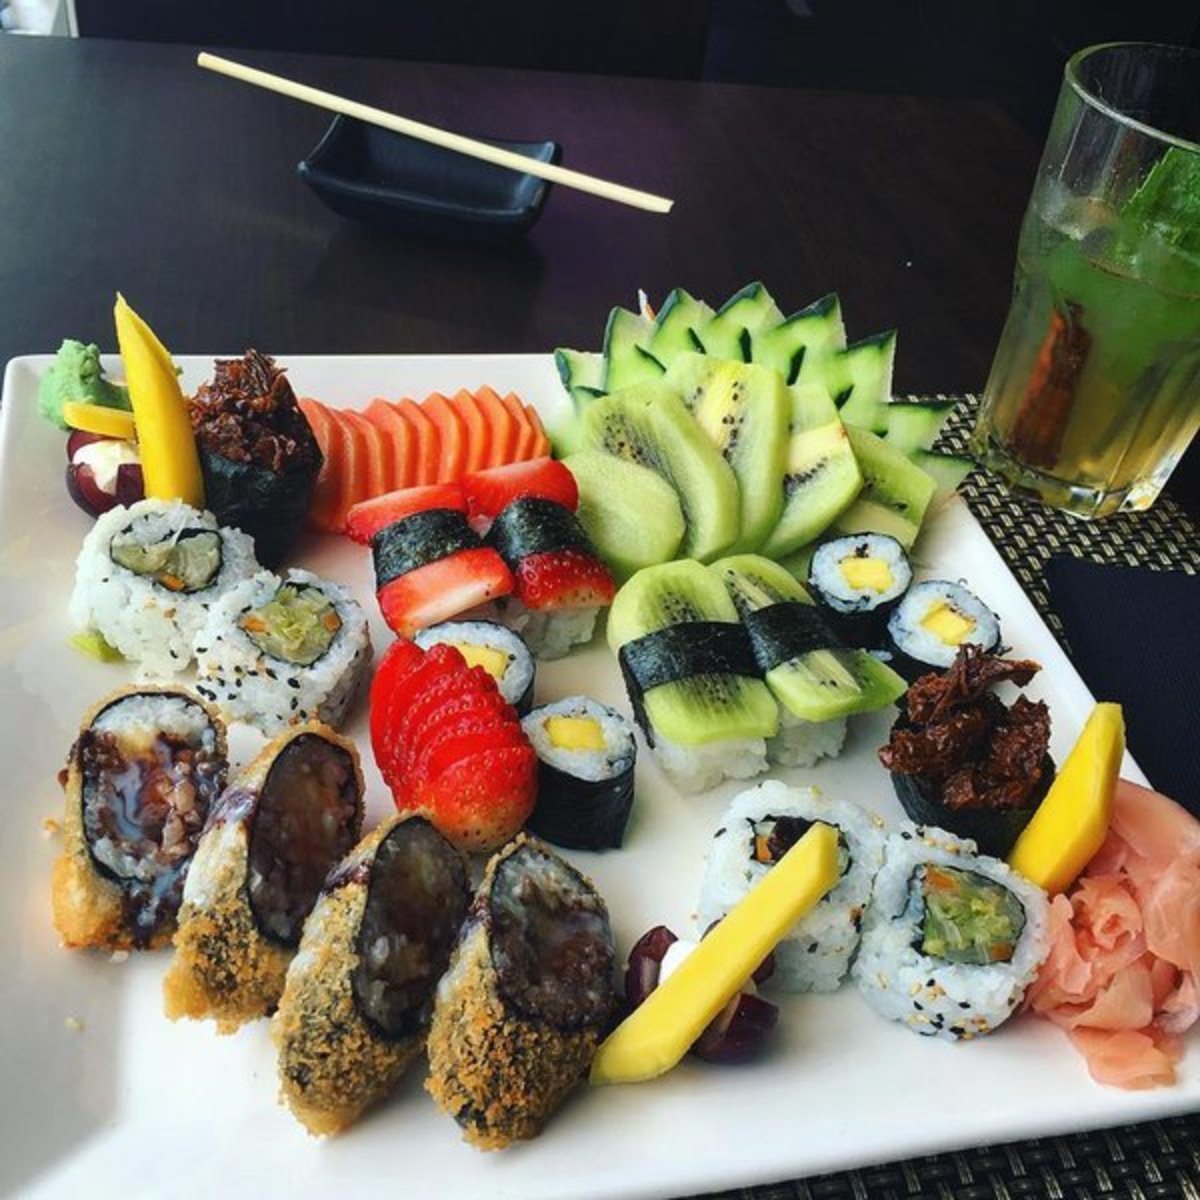 Vegan sushi from Mihaela Popescu Twitter page.